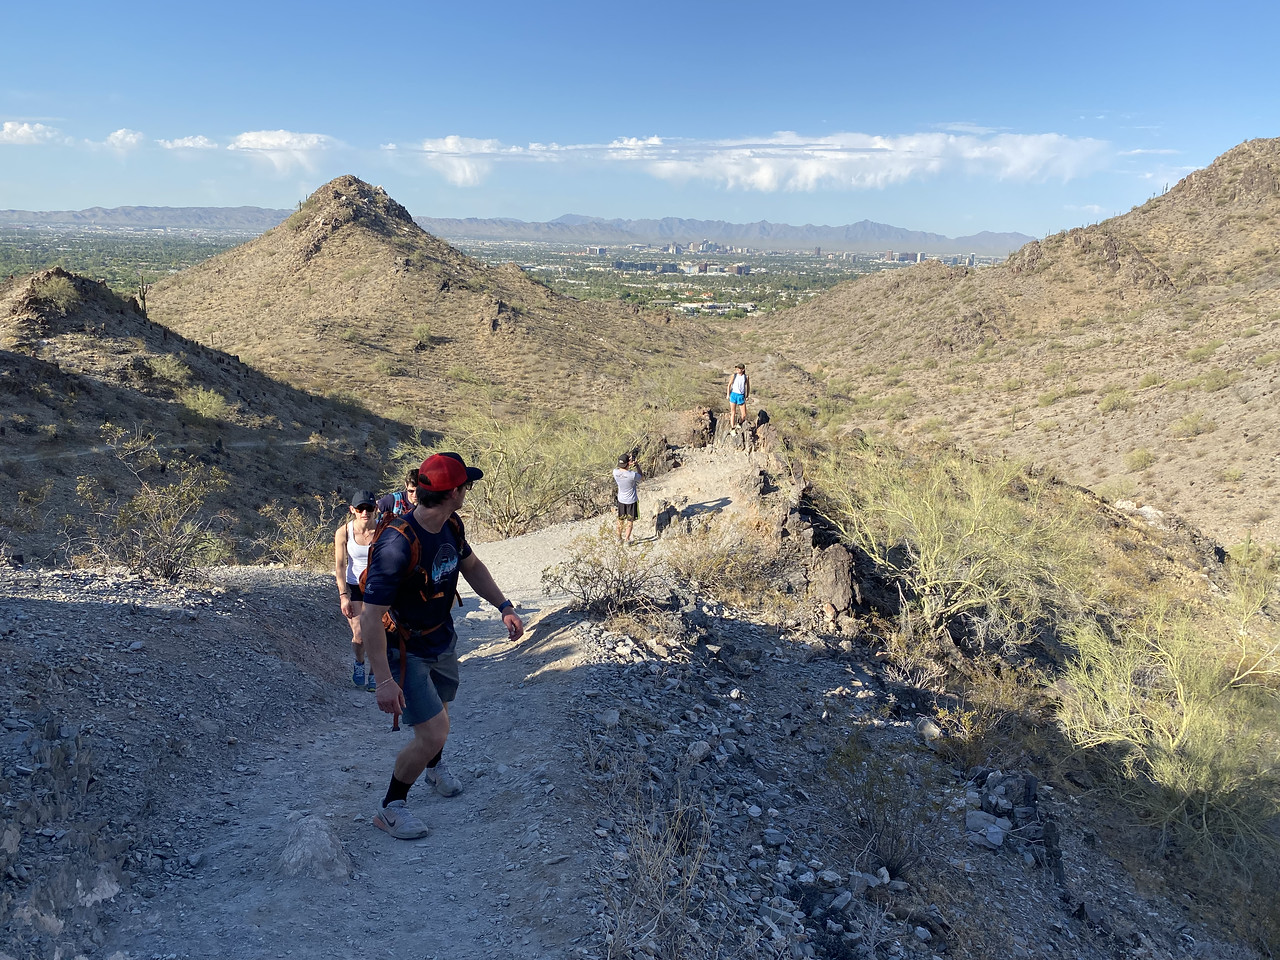 A hiking group makes its way up a scenic hill during a Wild Bunch Desert Guides outing. The leader of the pack (orange hat) peeks over his shoulder to admire the view and spies the last two hikers pausing to take a picture with the sweeping landscape behind them.